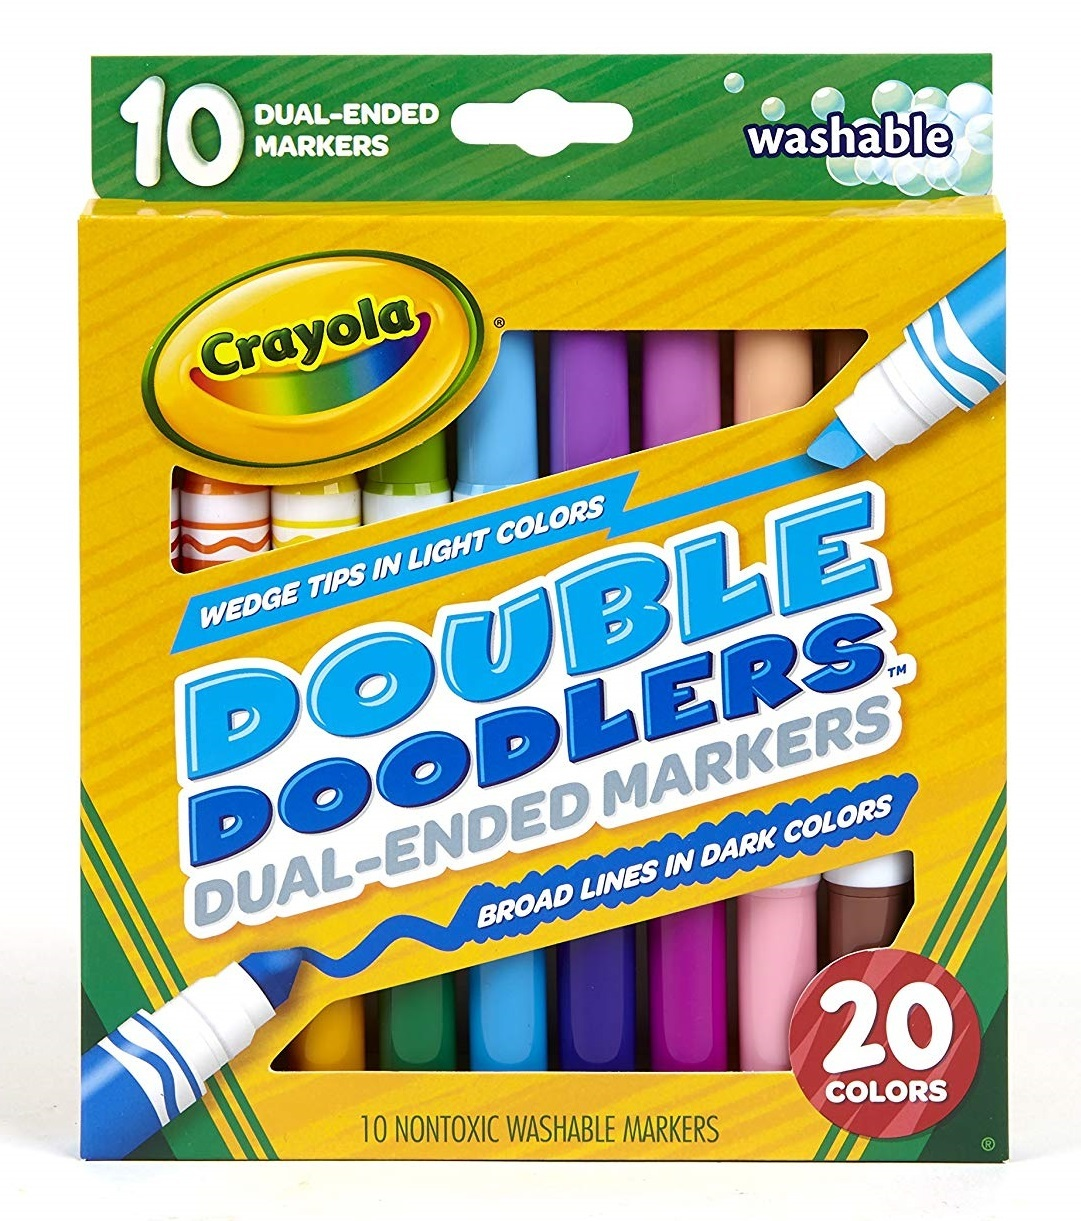 Crayola: Double Doodlers - Washable Dual-Ended Markers (10-Pack) image